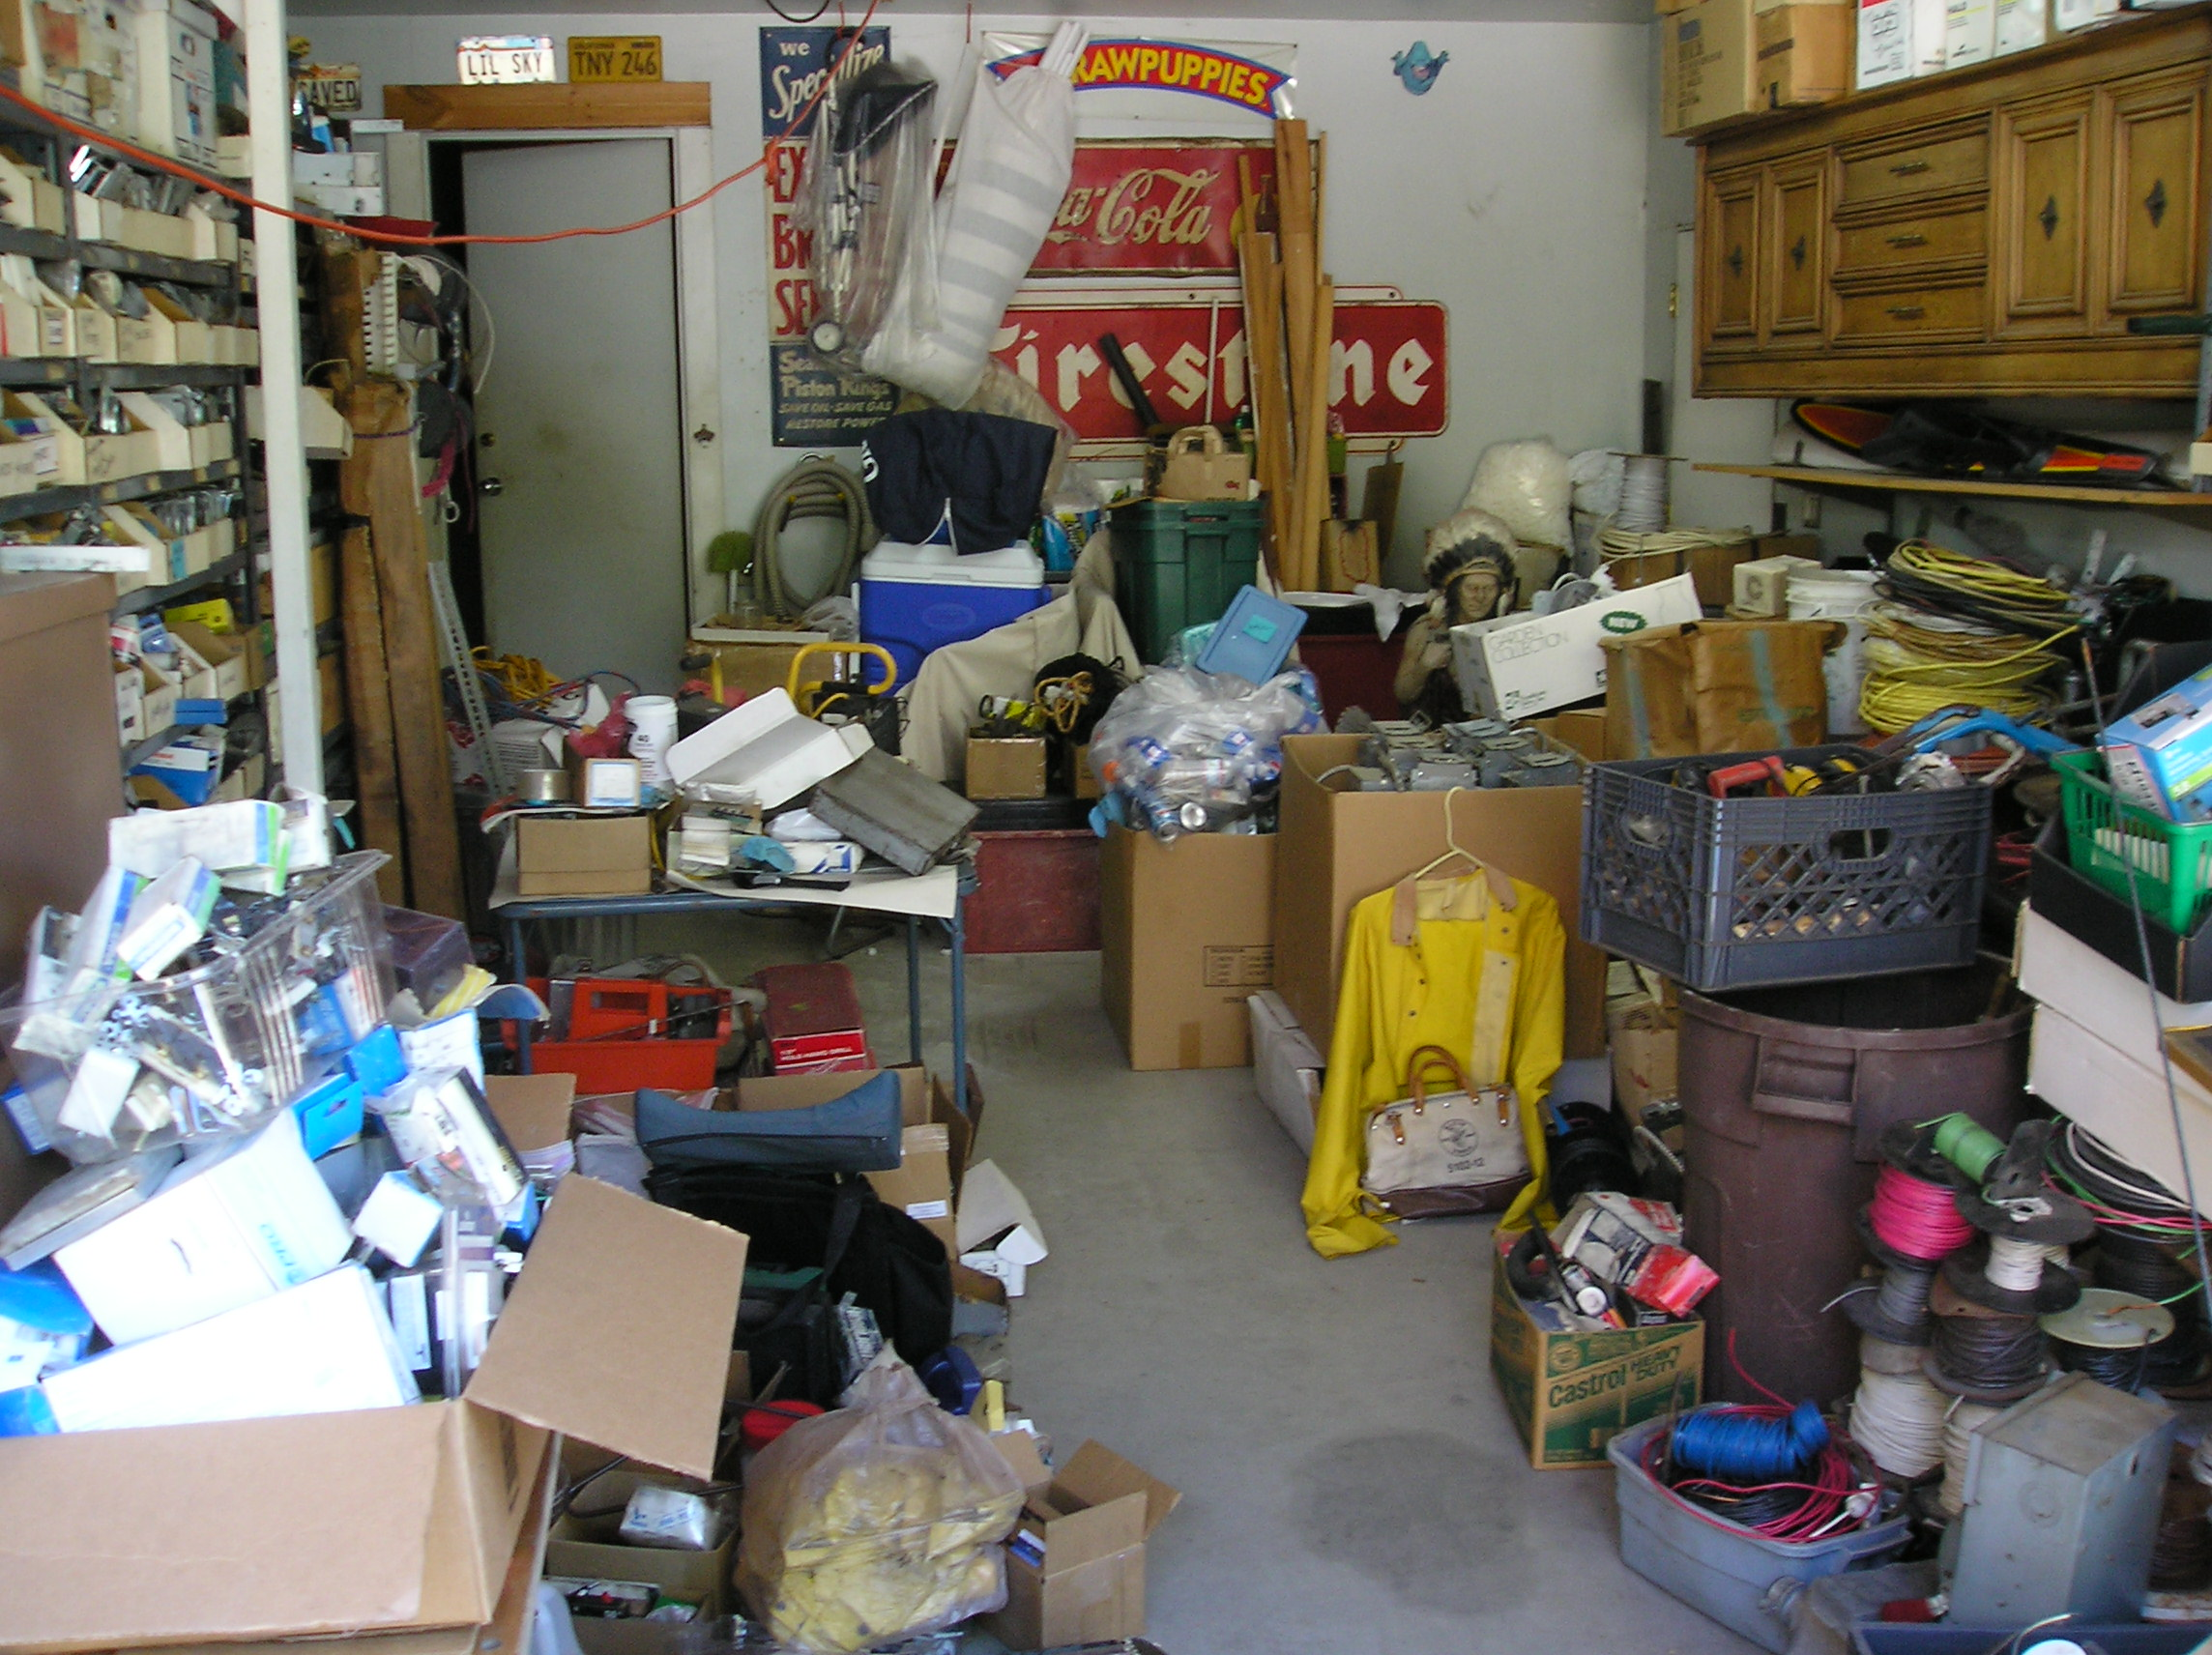 Our garage only slightly messier than normal due to Gary's work truck being unloaded here prior to selling.